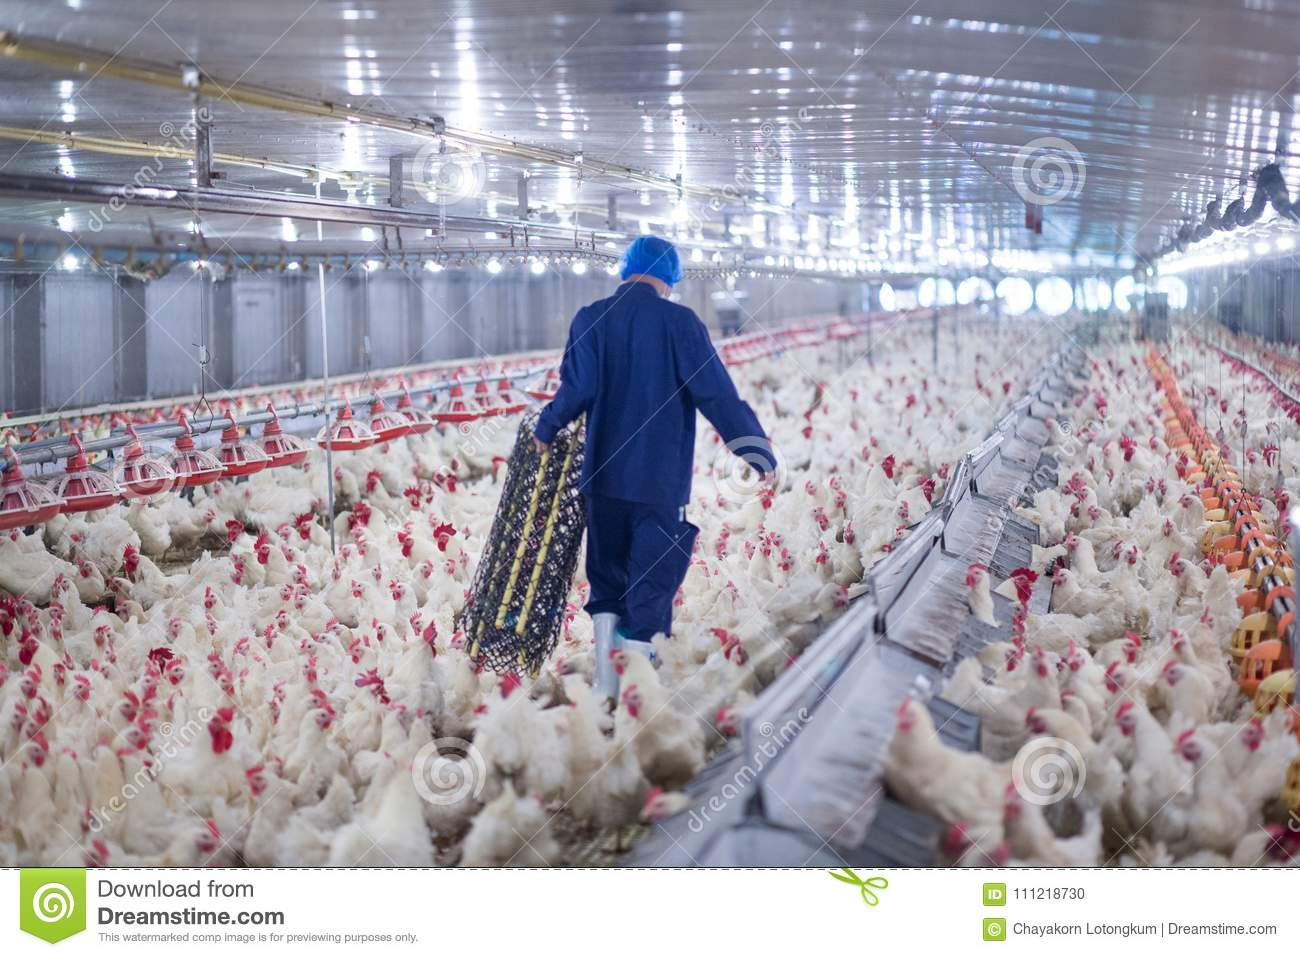 DIPLOMA IN POULTRY FARMING IIOSD